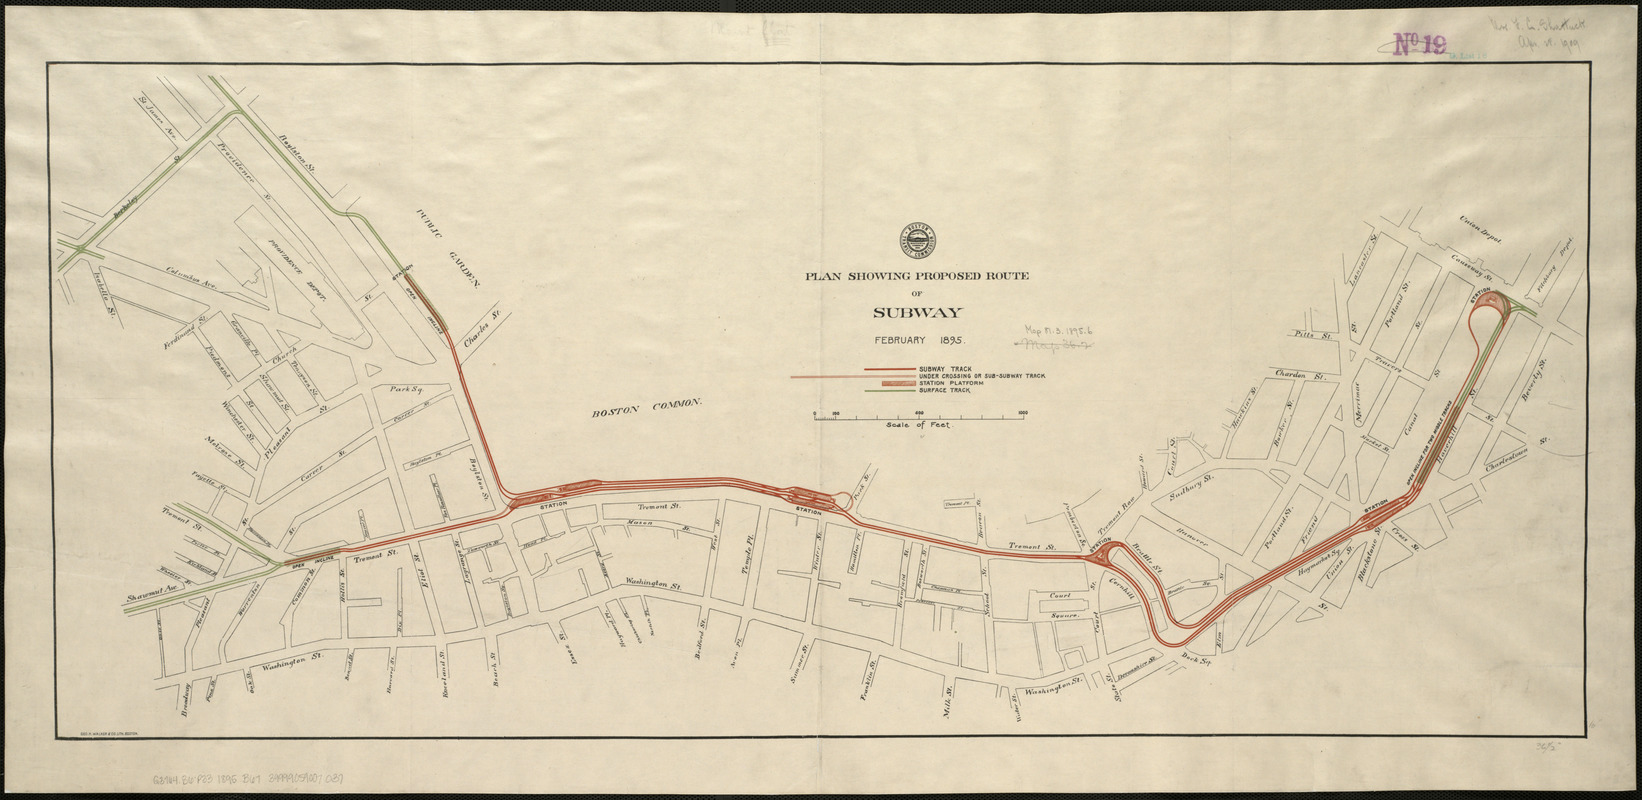 Plan showing proposed route of Subway, February 1895